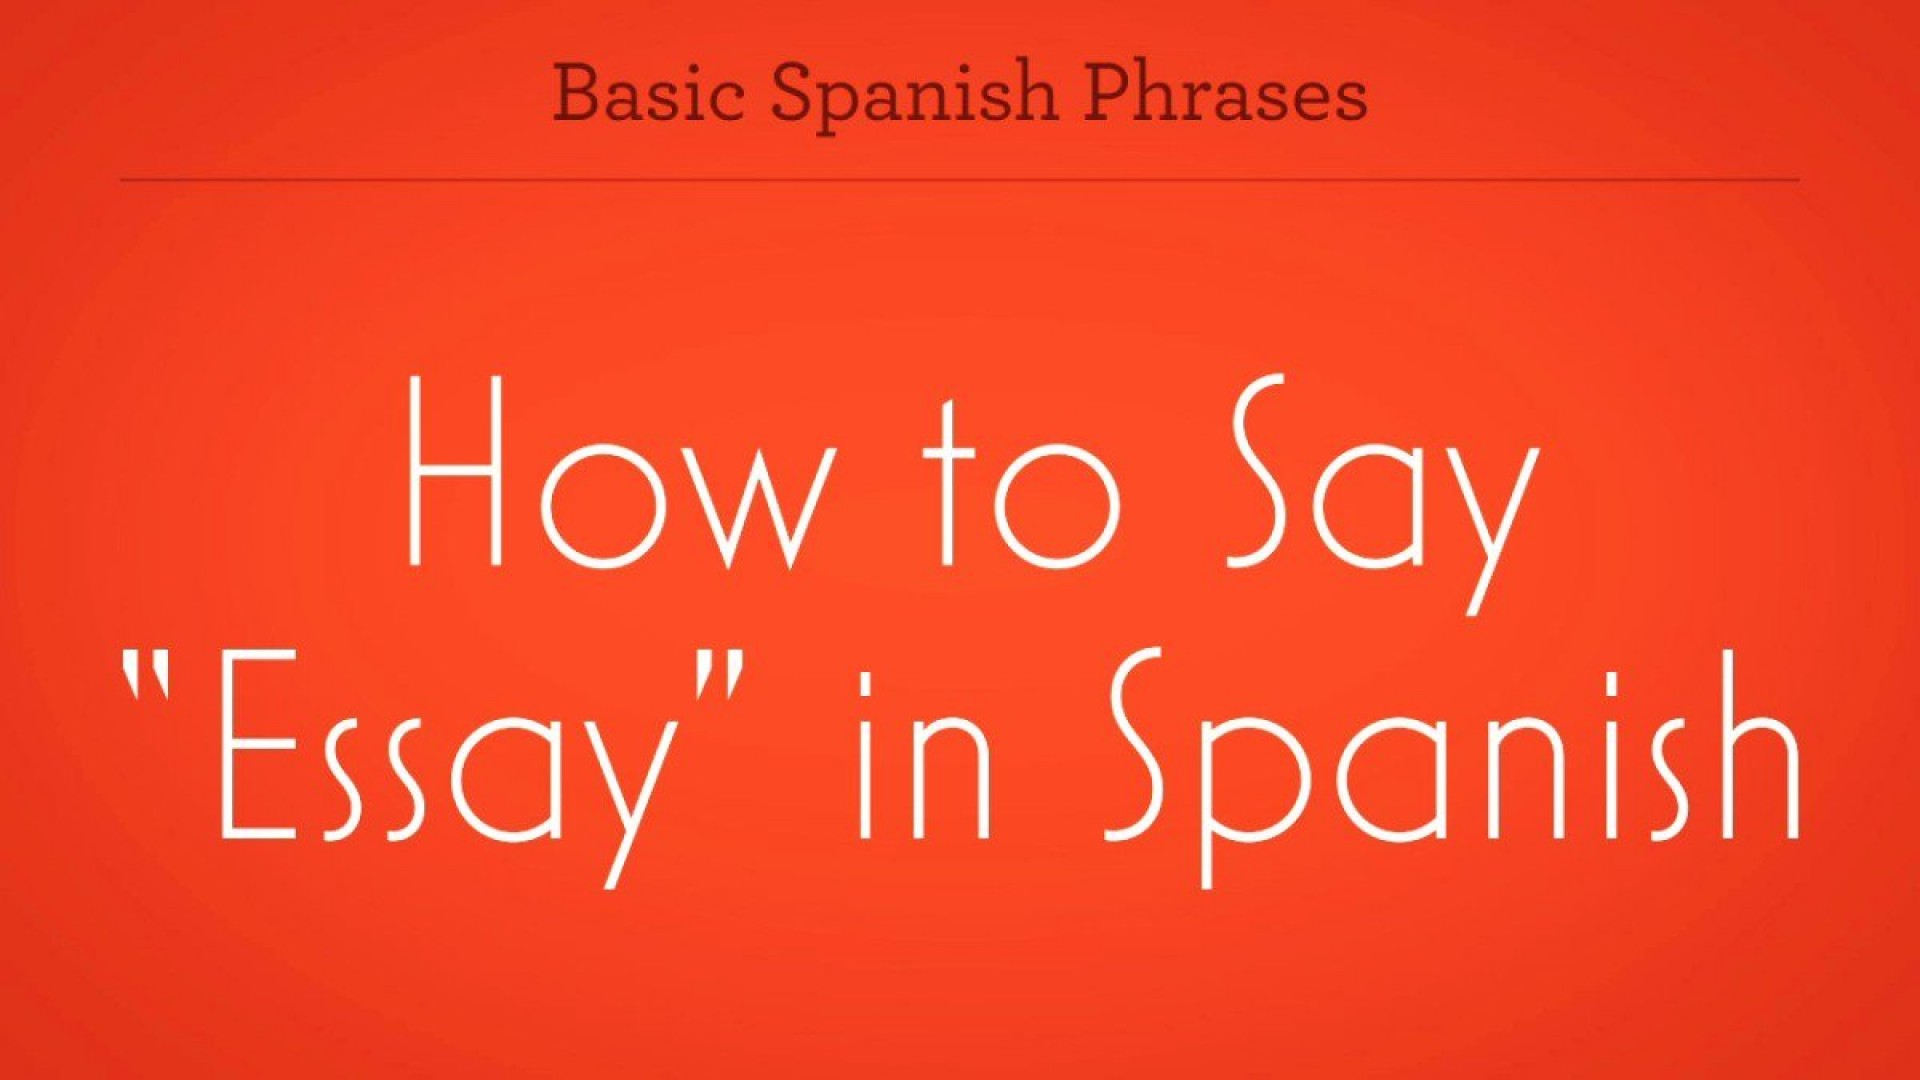 005 Zv How To Say Essay In Spanish Promo Image Frightening Google Translate Persuasive 1920